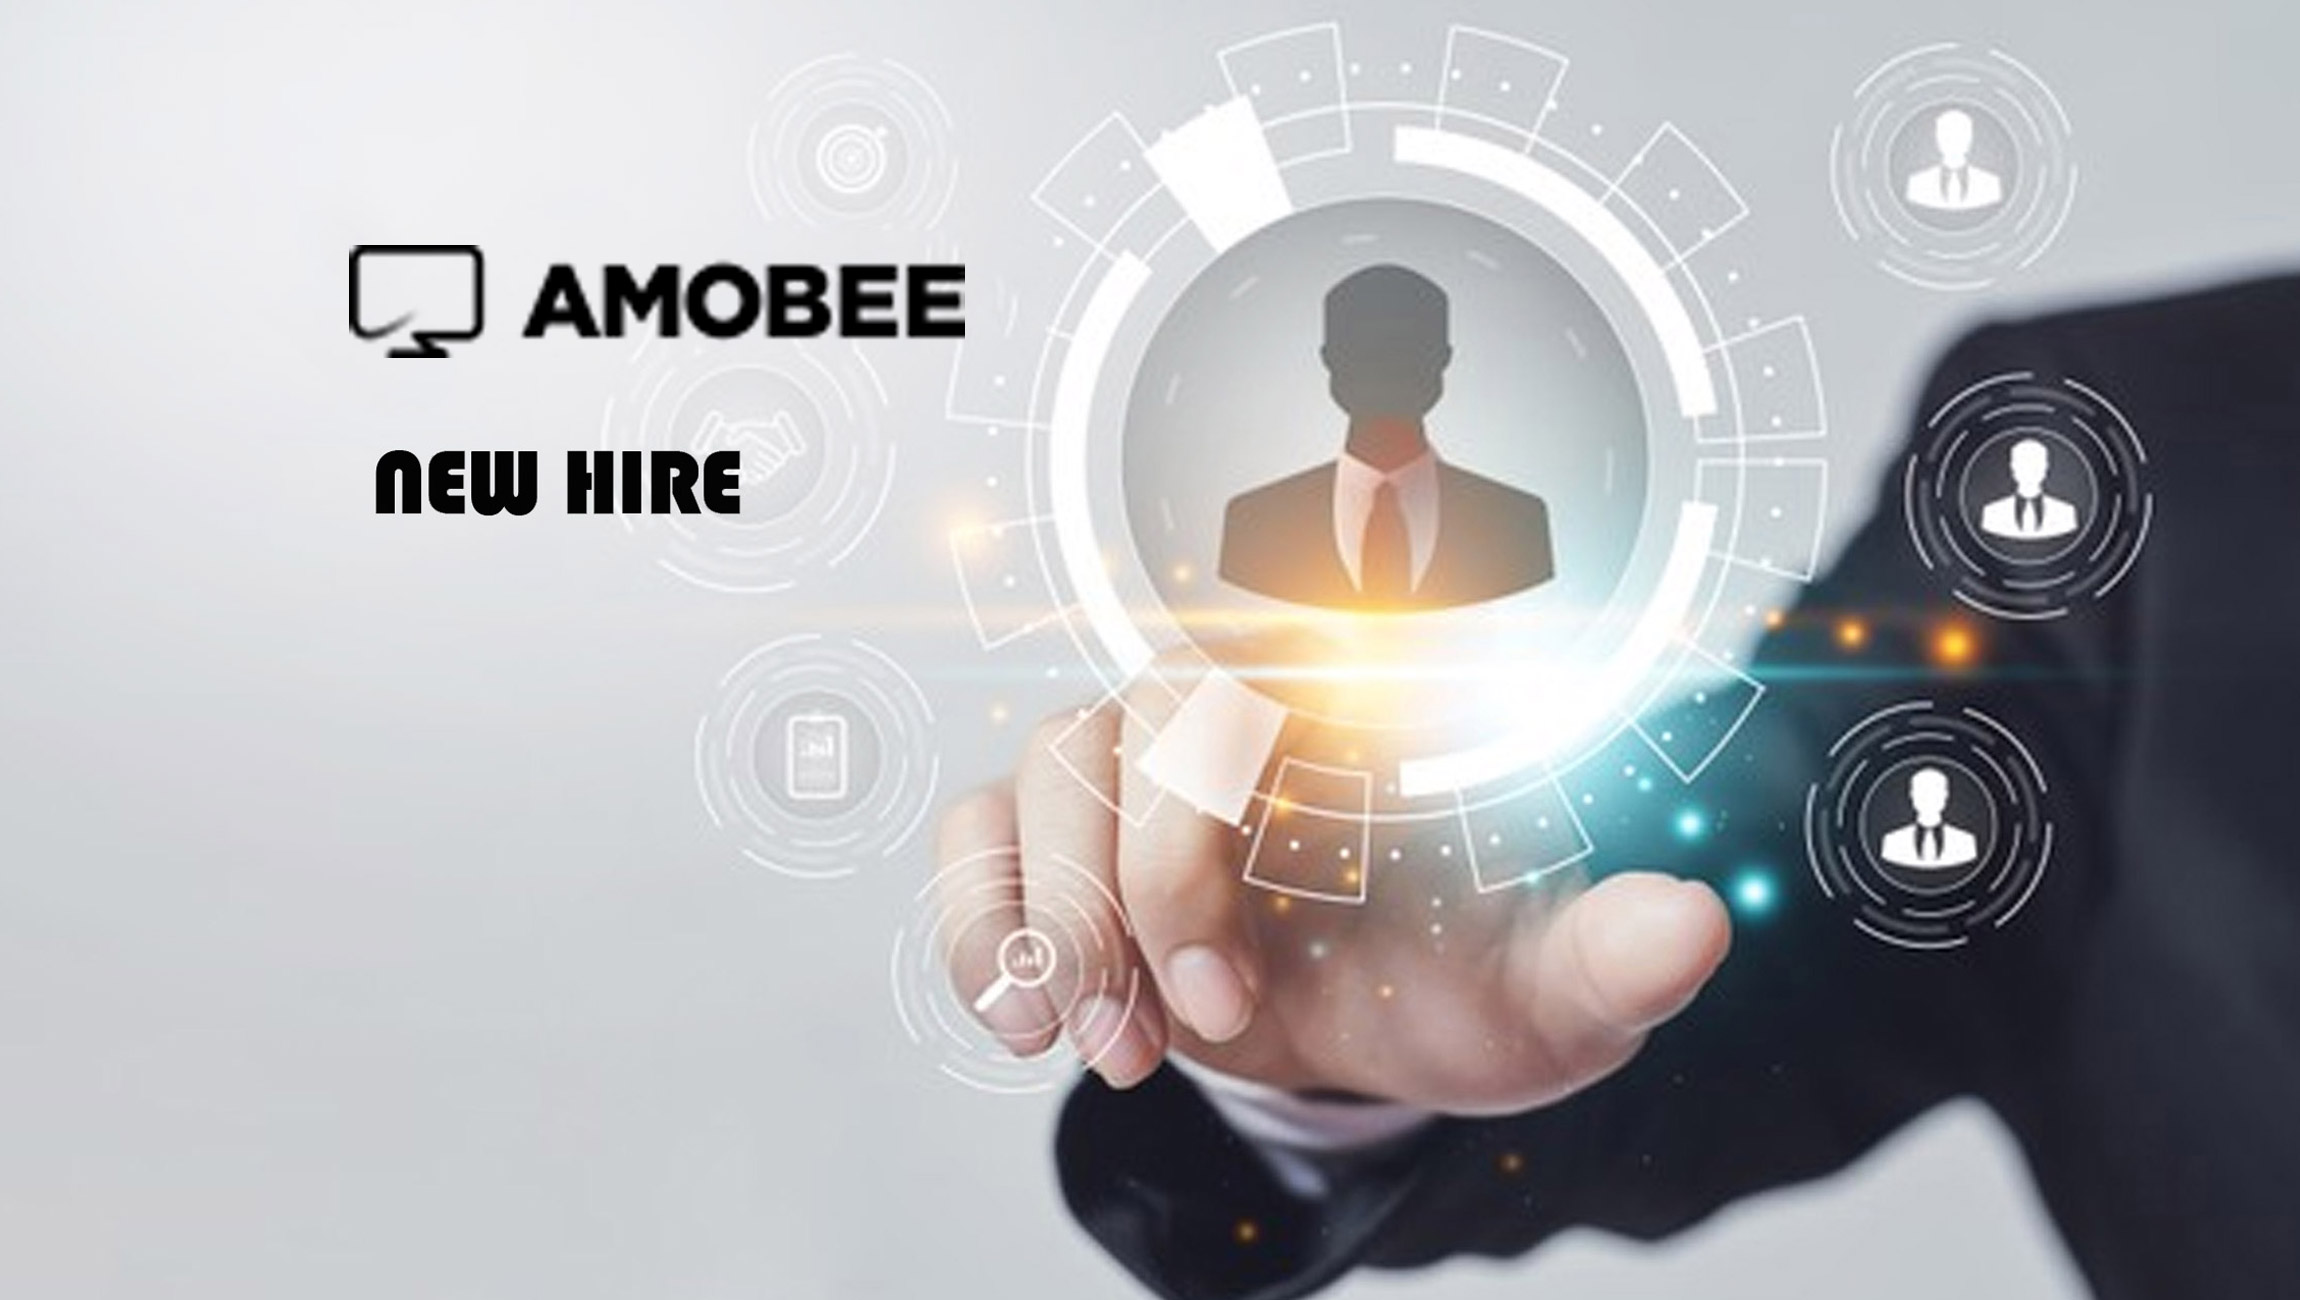 Amobee Names Nick Brien as Chief Executive Officer